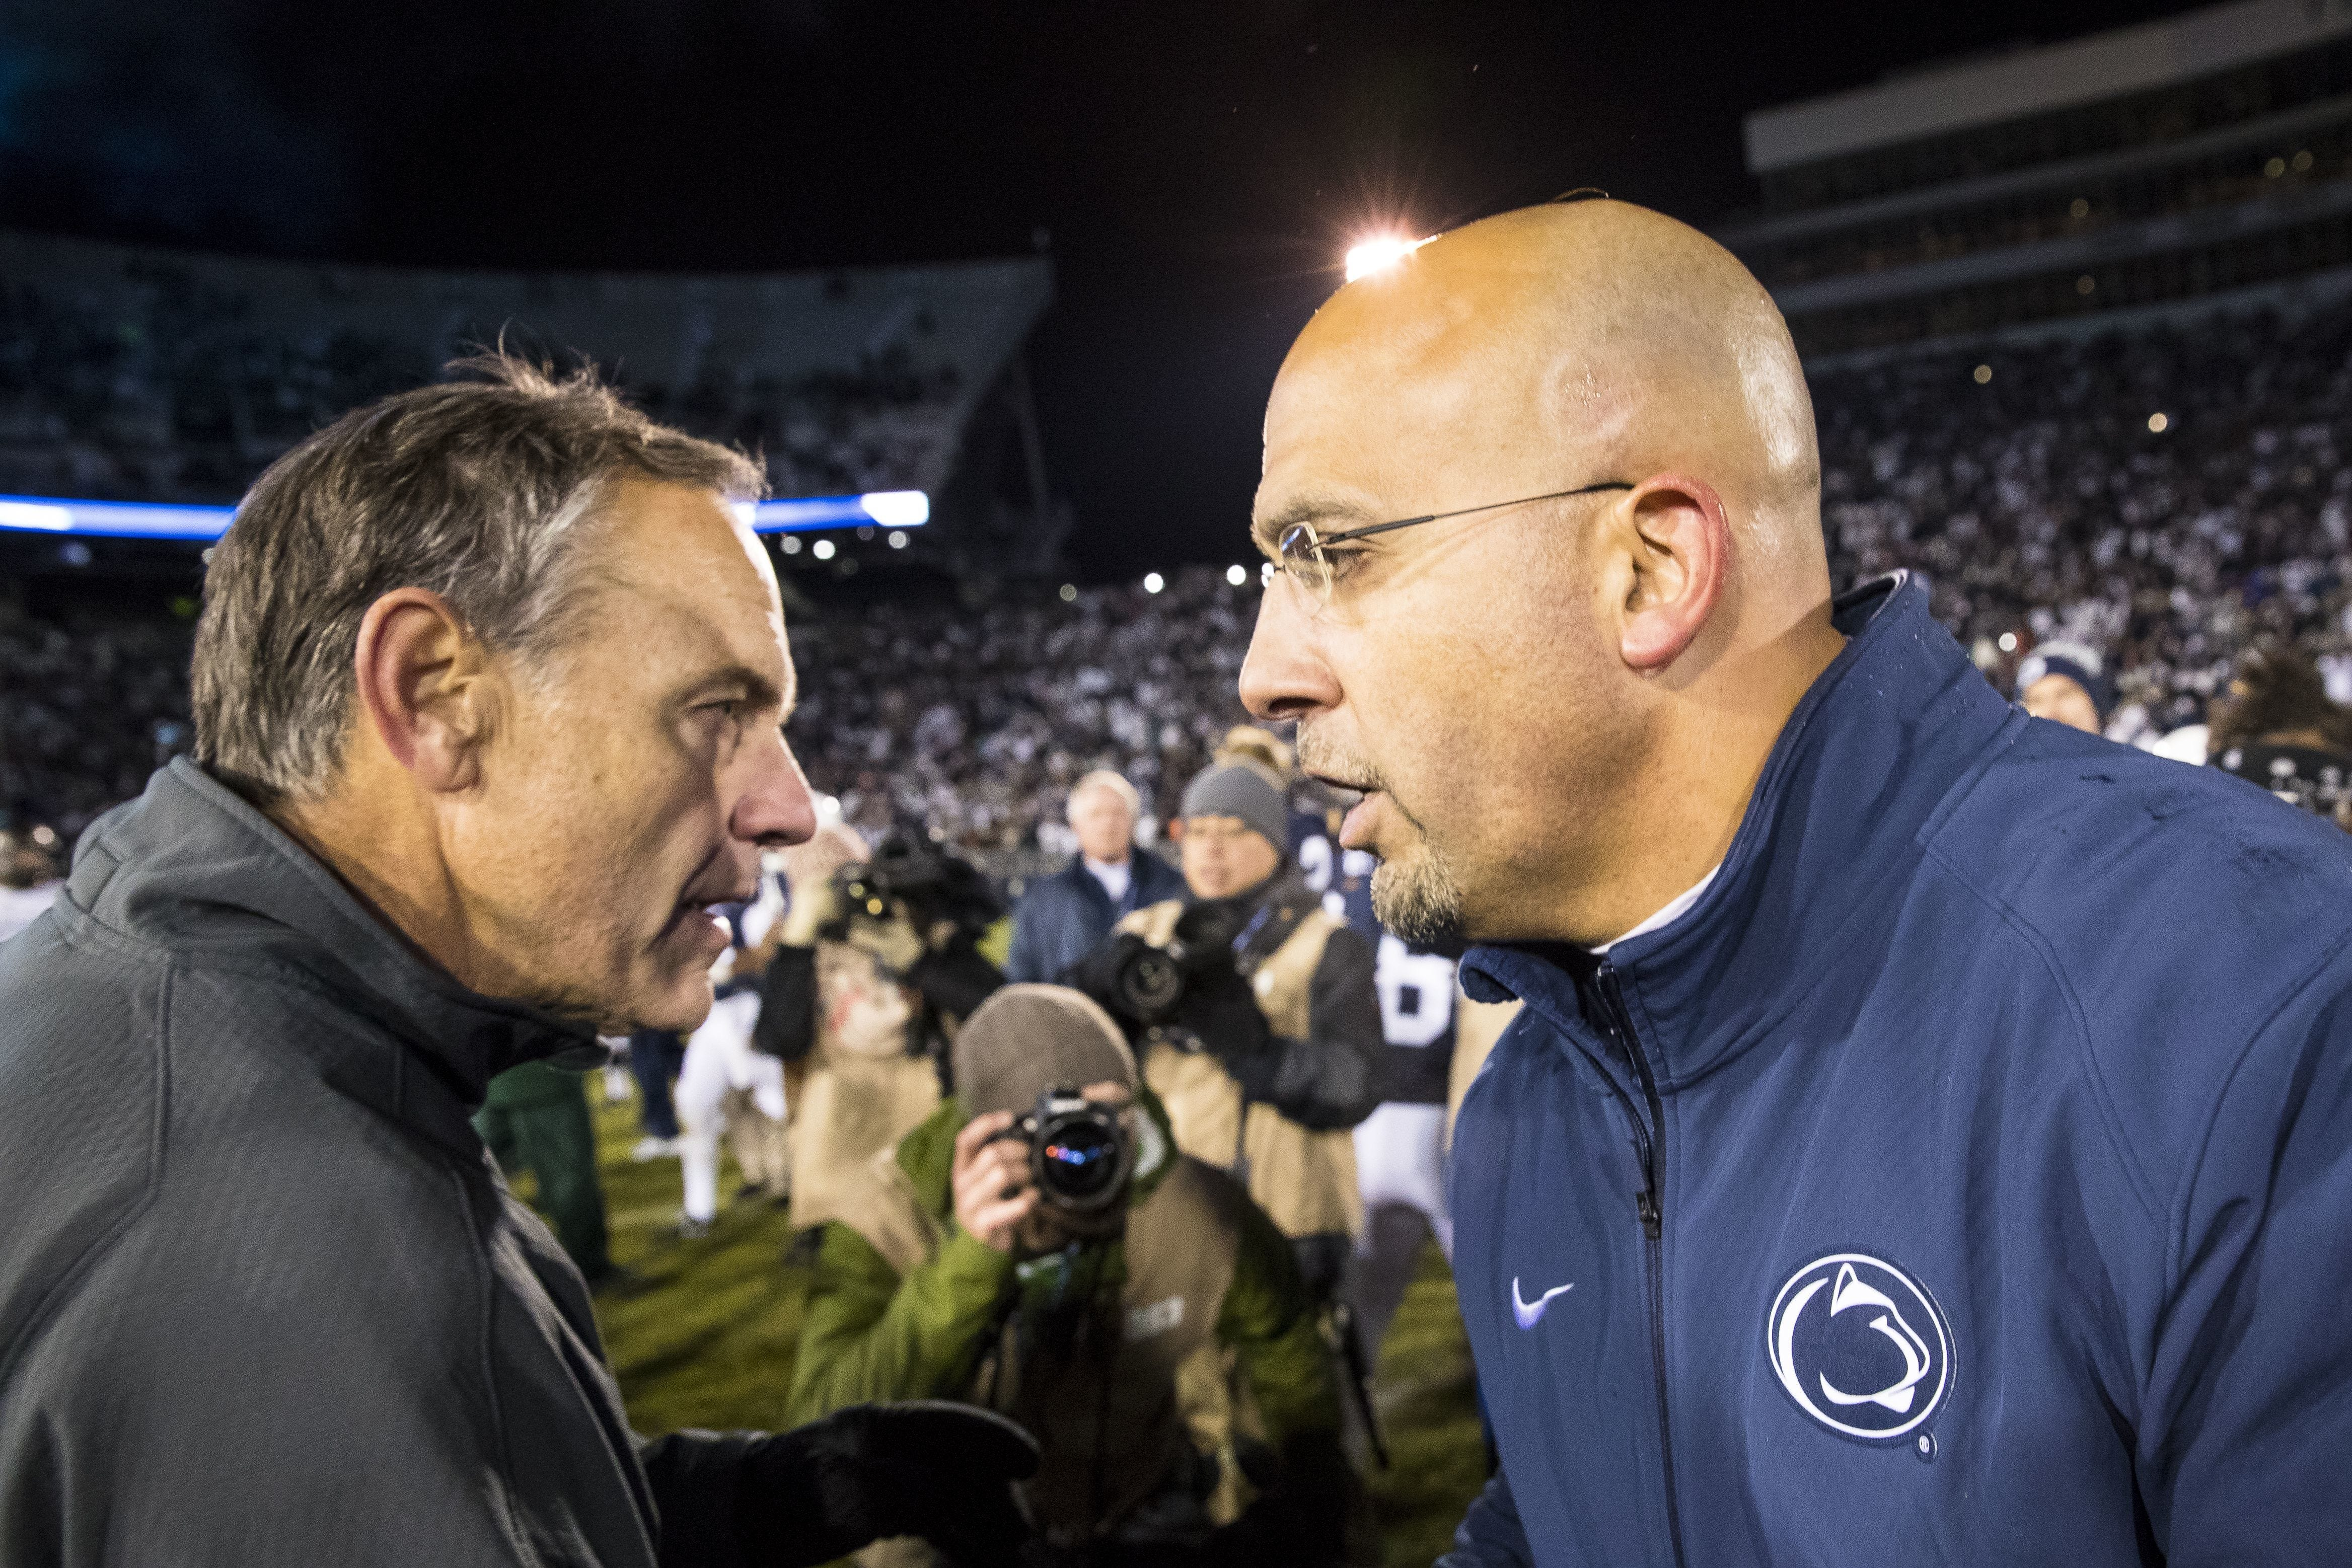 Michigan State football coach Mark Dantonio, left, and Penn State's James Franklin will meet again Oct. 26 at Spartan Stadium. The Spartans have won five of the last six meetings against the Nittany Lions.